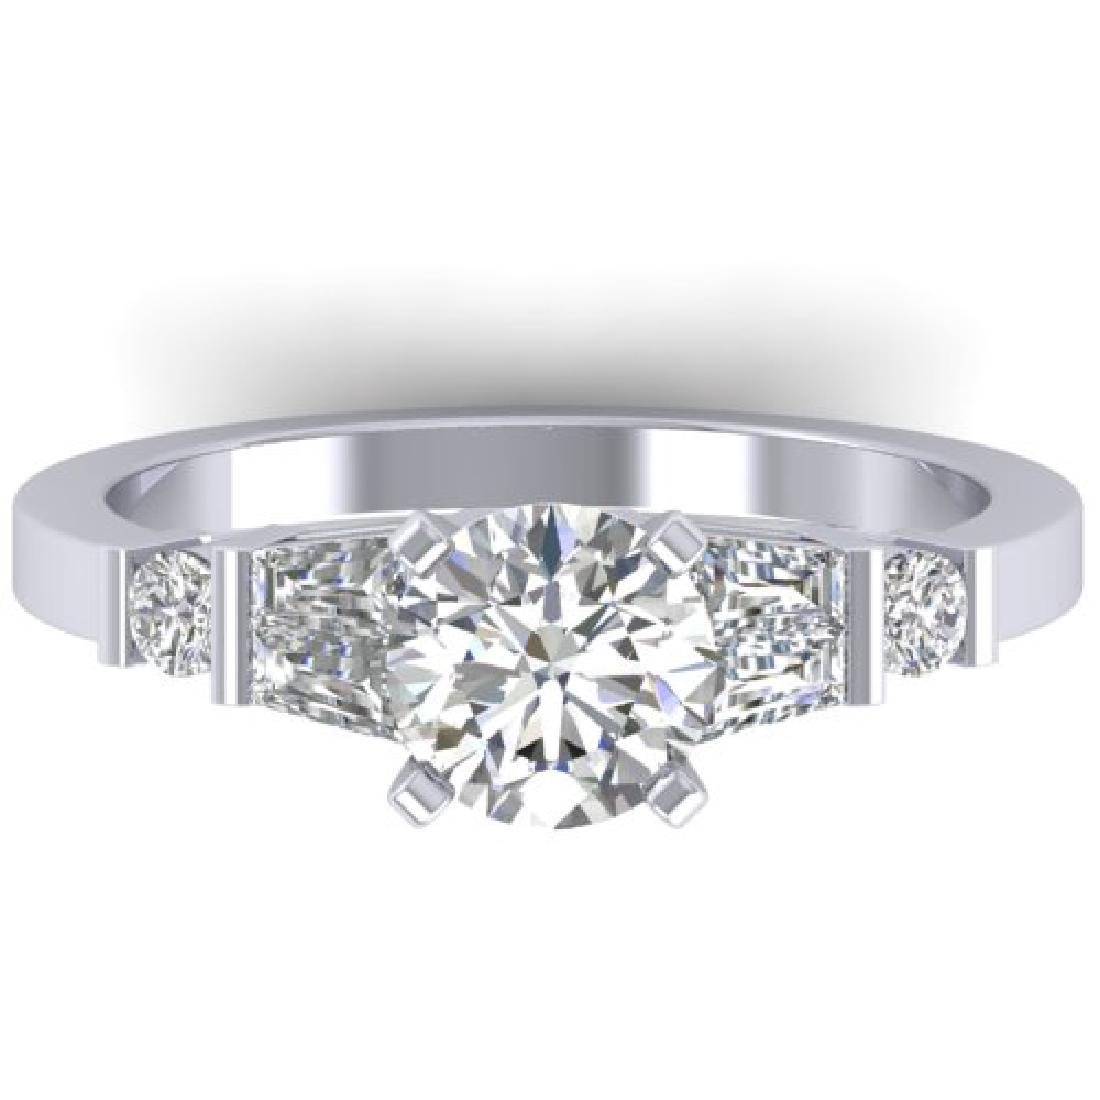 1.69 CTW VS/SI Diamond Solitaire Ring 14K White Gold -